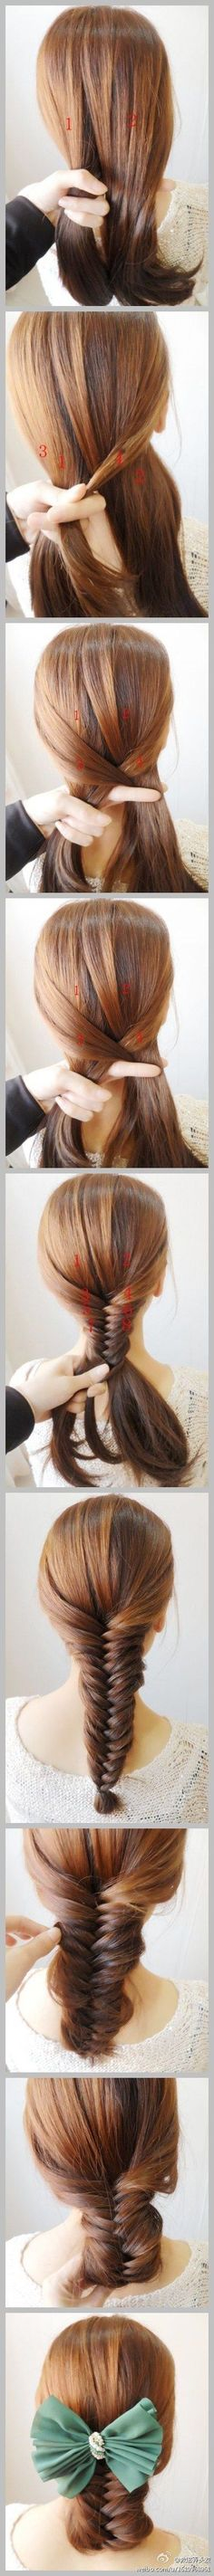 fishtail braid hair bow